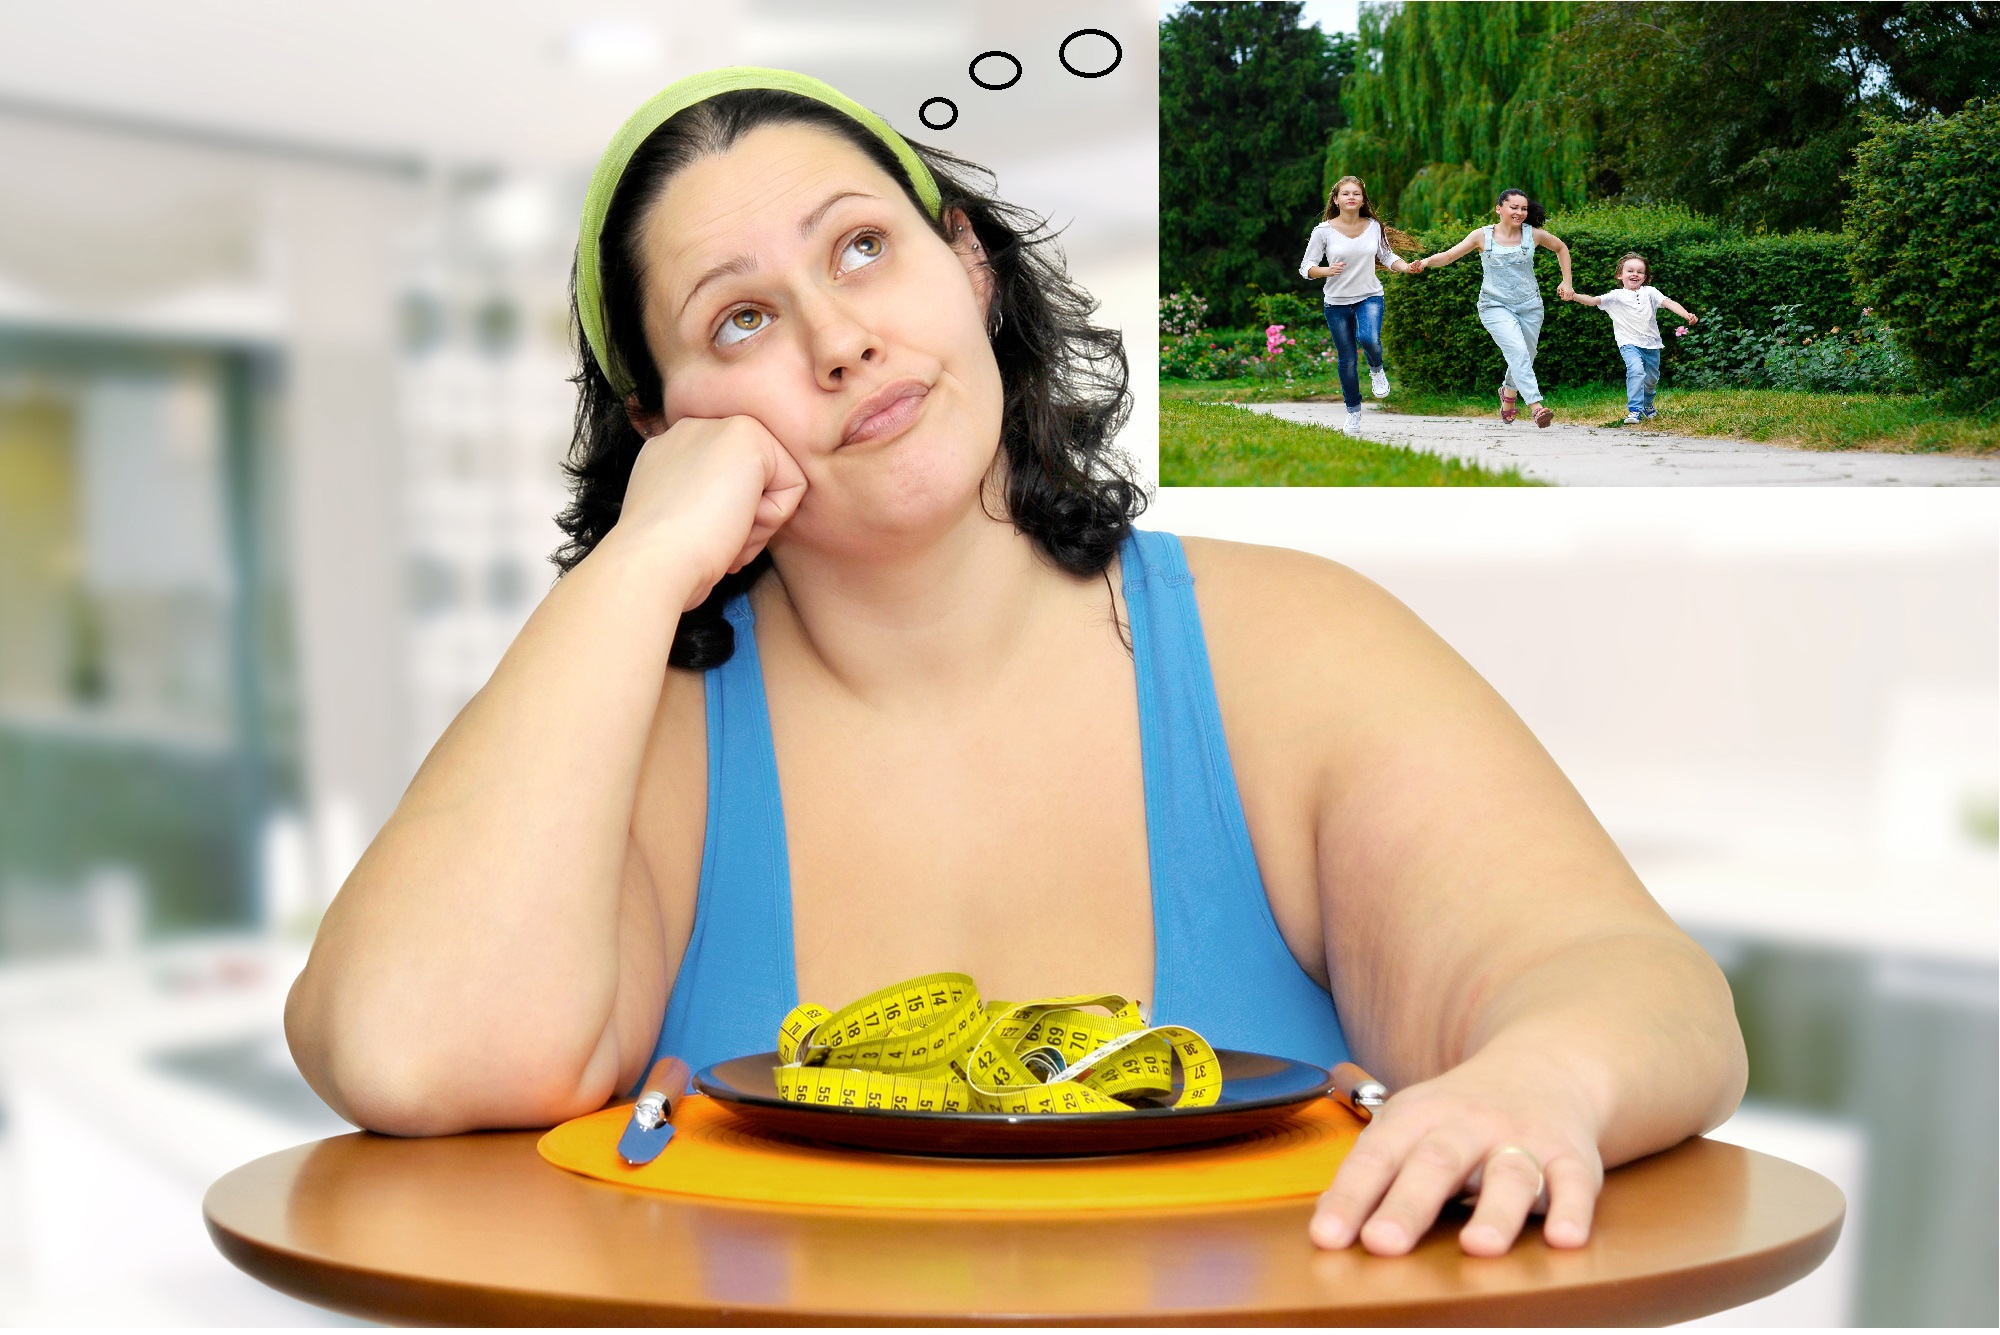 Large mum thinking about weight loss